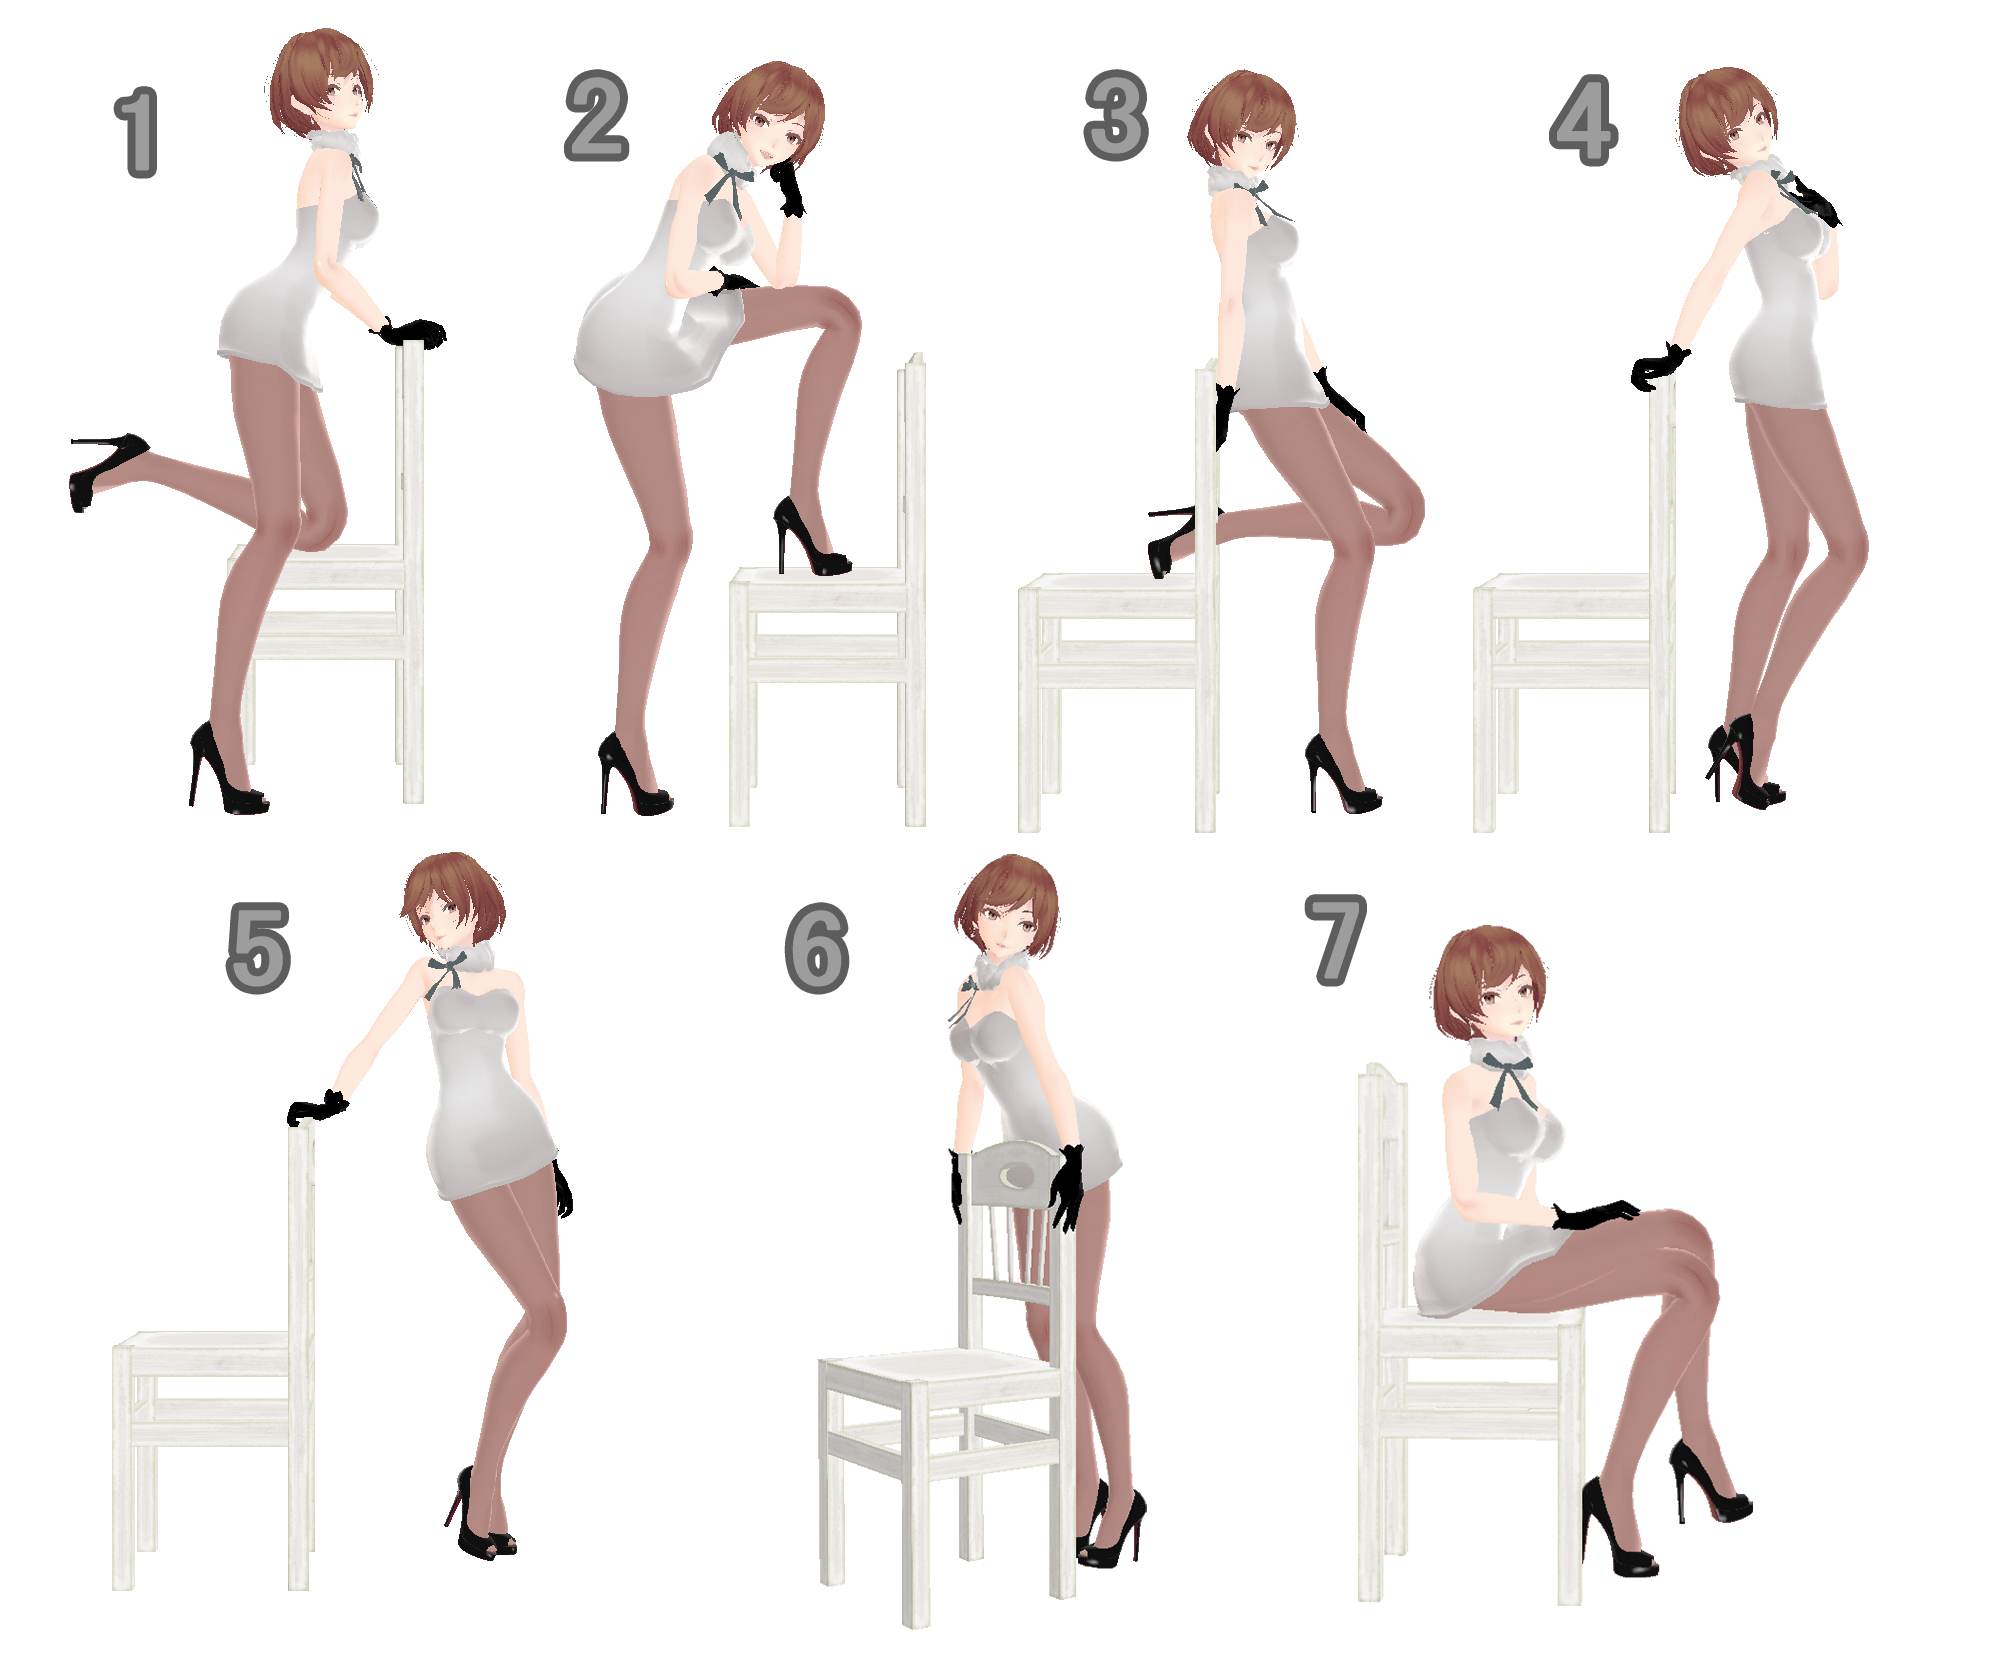 Anime Couple Cute Wallpaper Apk Mmd Chair Pose Pack Dl By Snorlaxin On Deviantart